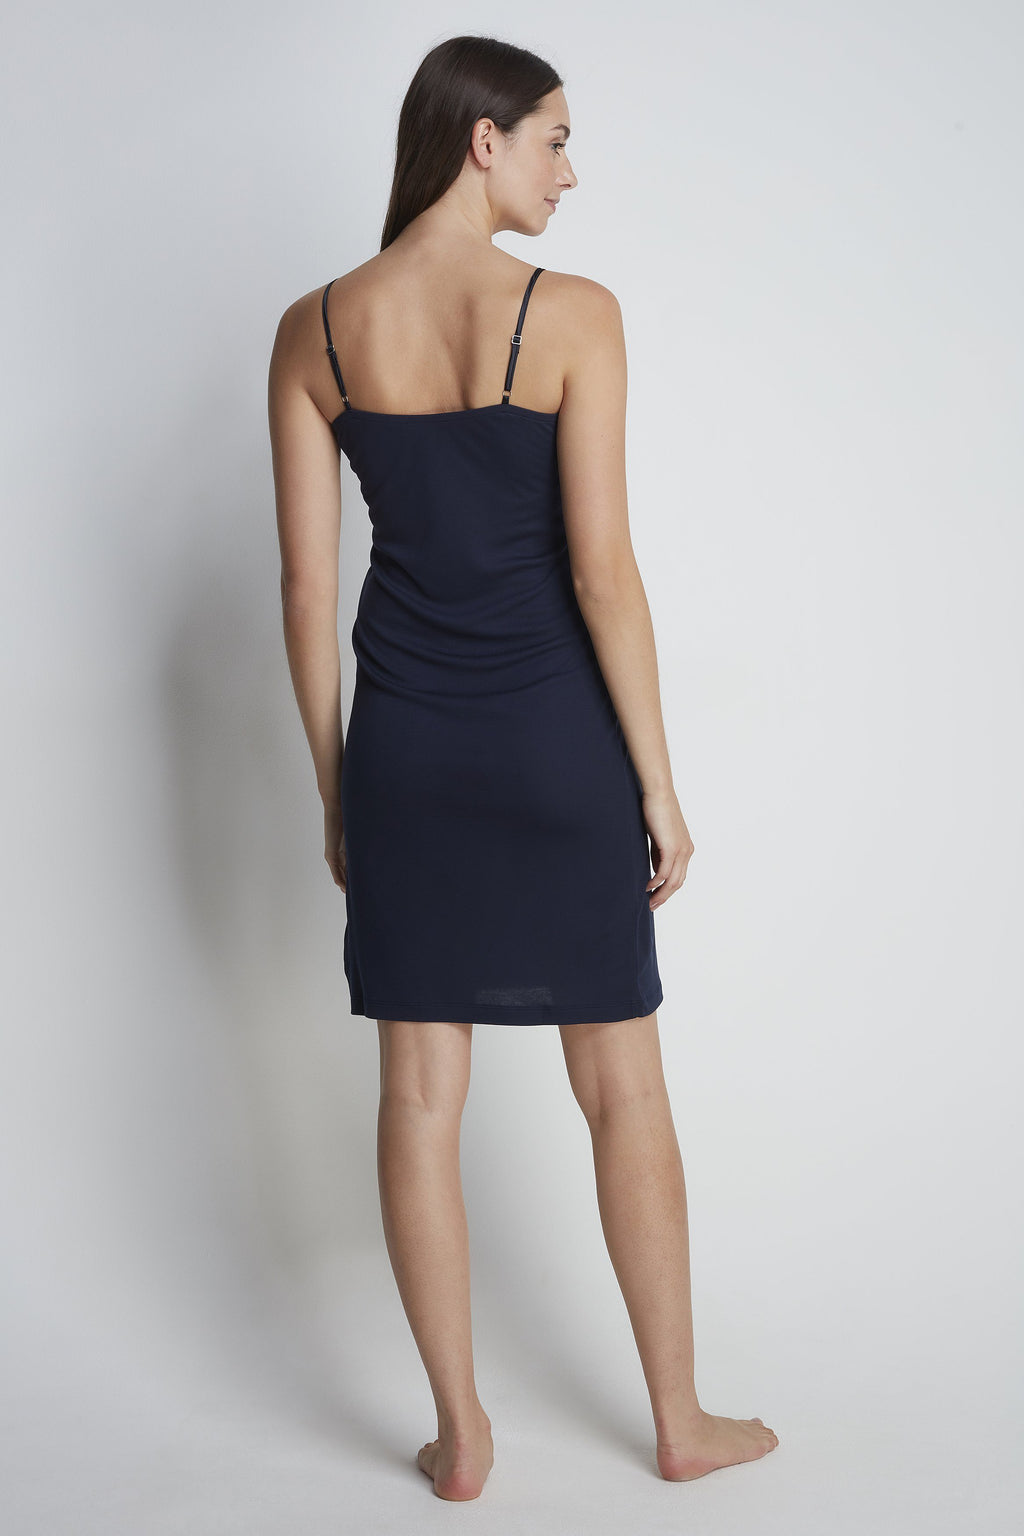 Luxury Micro Modal Night Dress - Elegant Navy Night Dress - Comfortable Micro Modal Slip Dress - Sustainable Lavender Hill Clothing